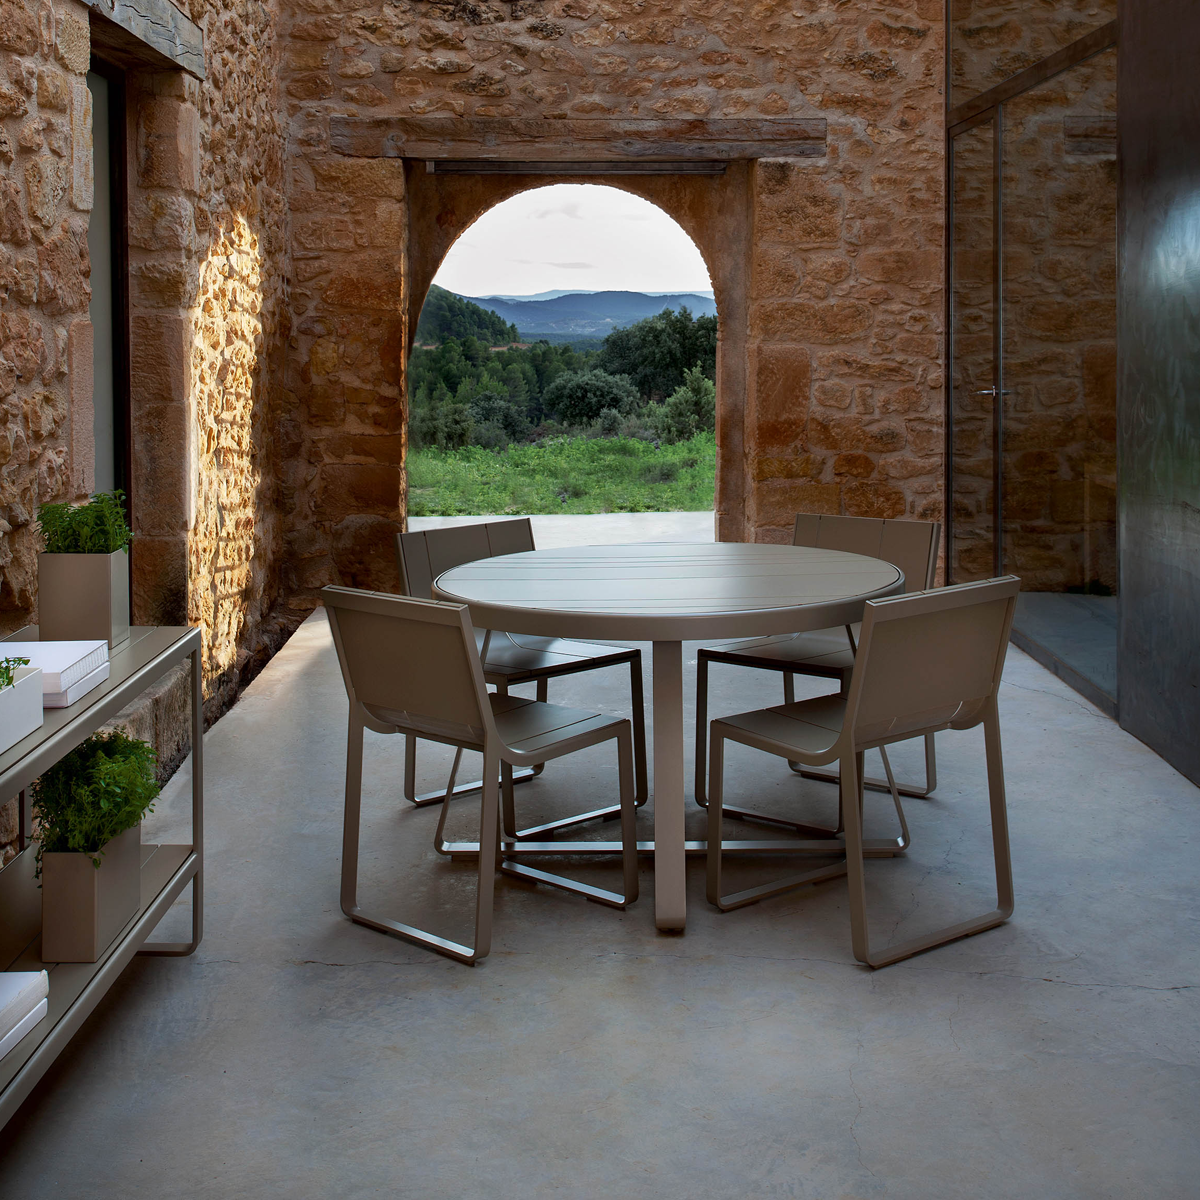 Luxury Italian furniture for outdoor spaces